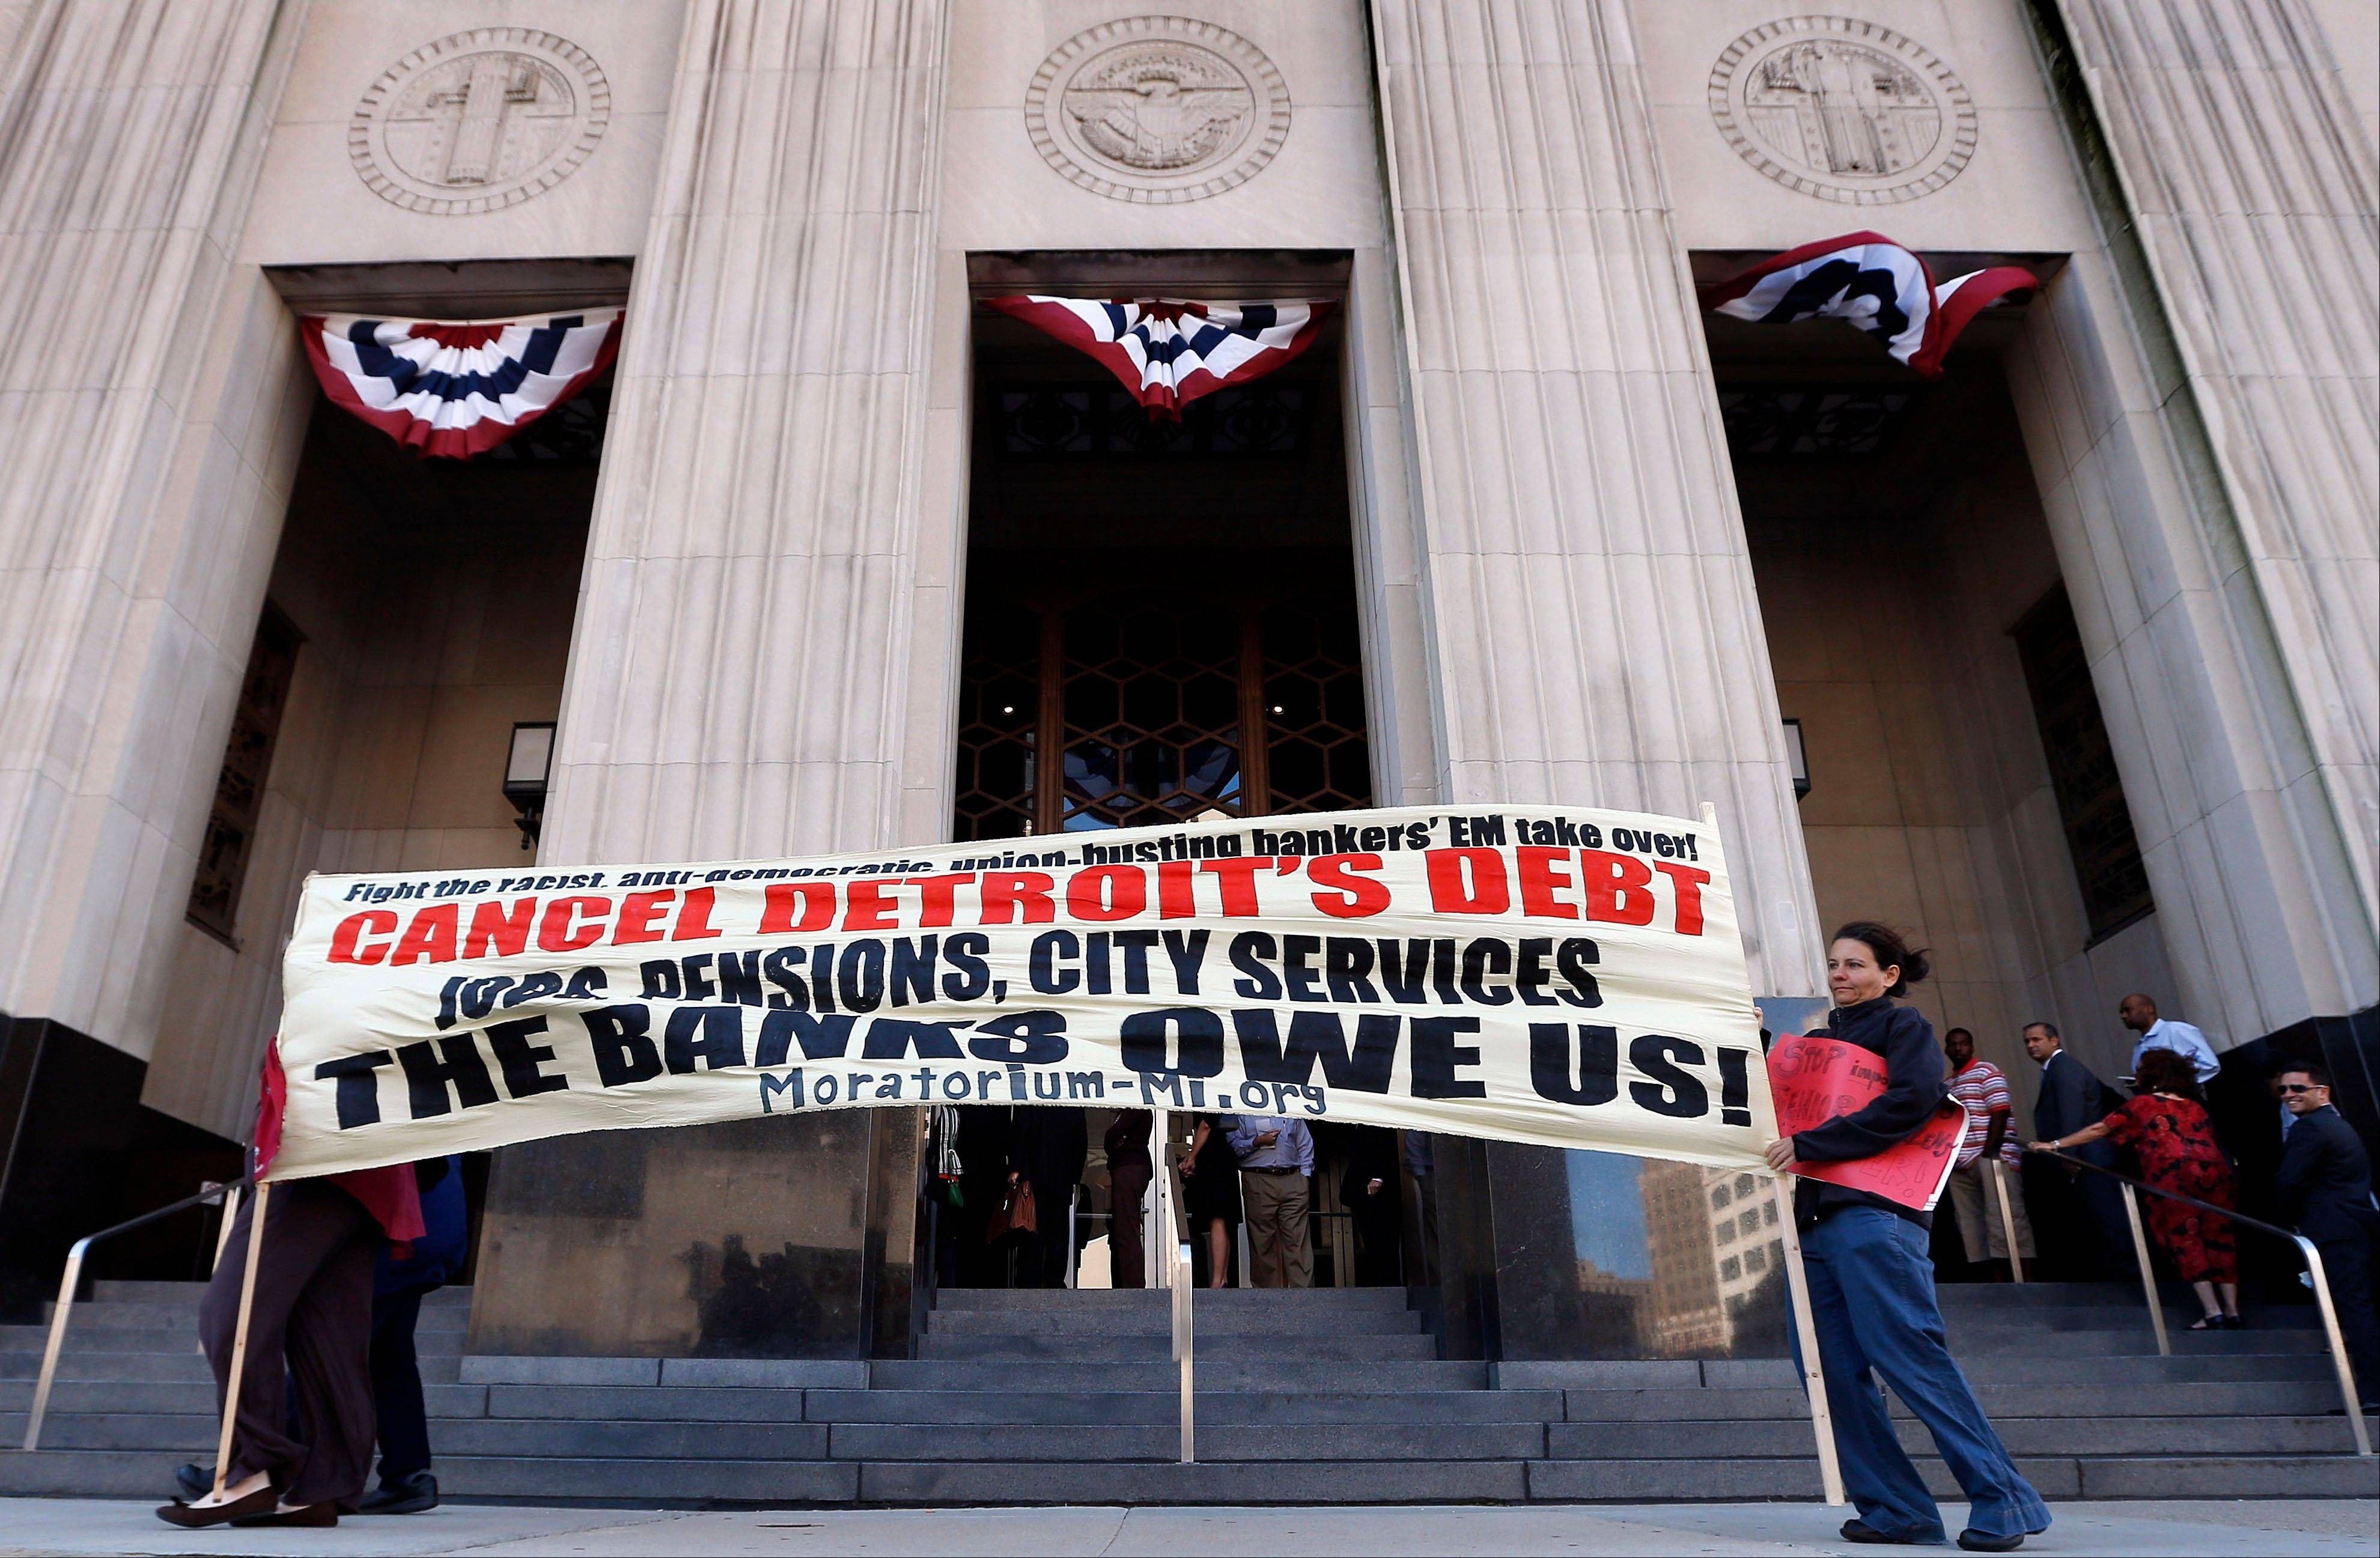 On July 24, protesters carry a sign outside the Levin Federal Courthouse in Detroit. Detroit's historic bankruptcy filing is a major setback for public sector unions that have spent years trying to ward off cuts to the pensions and benefits of government workers. If the city succeeds, it could put into jeopardy a key bargaining tool for unions that have often deferred higher wages in favor of more generous pension benefits. And it could embolden other financially troubled cities dealing with pension shortfalls to consider bankruptcy, or at least take a harder line with their unions in negotiating cuts.